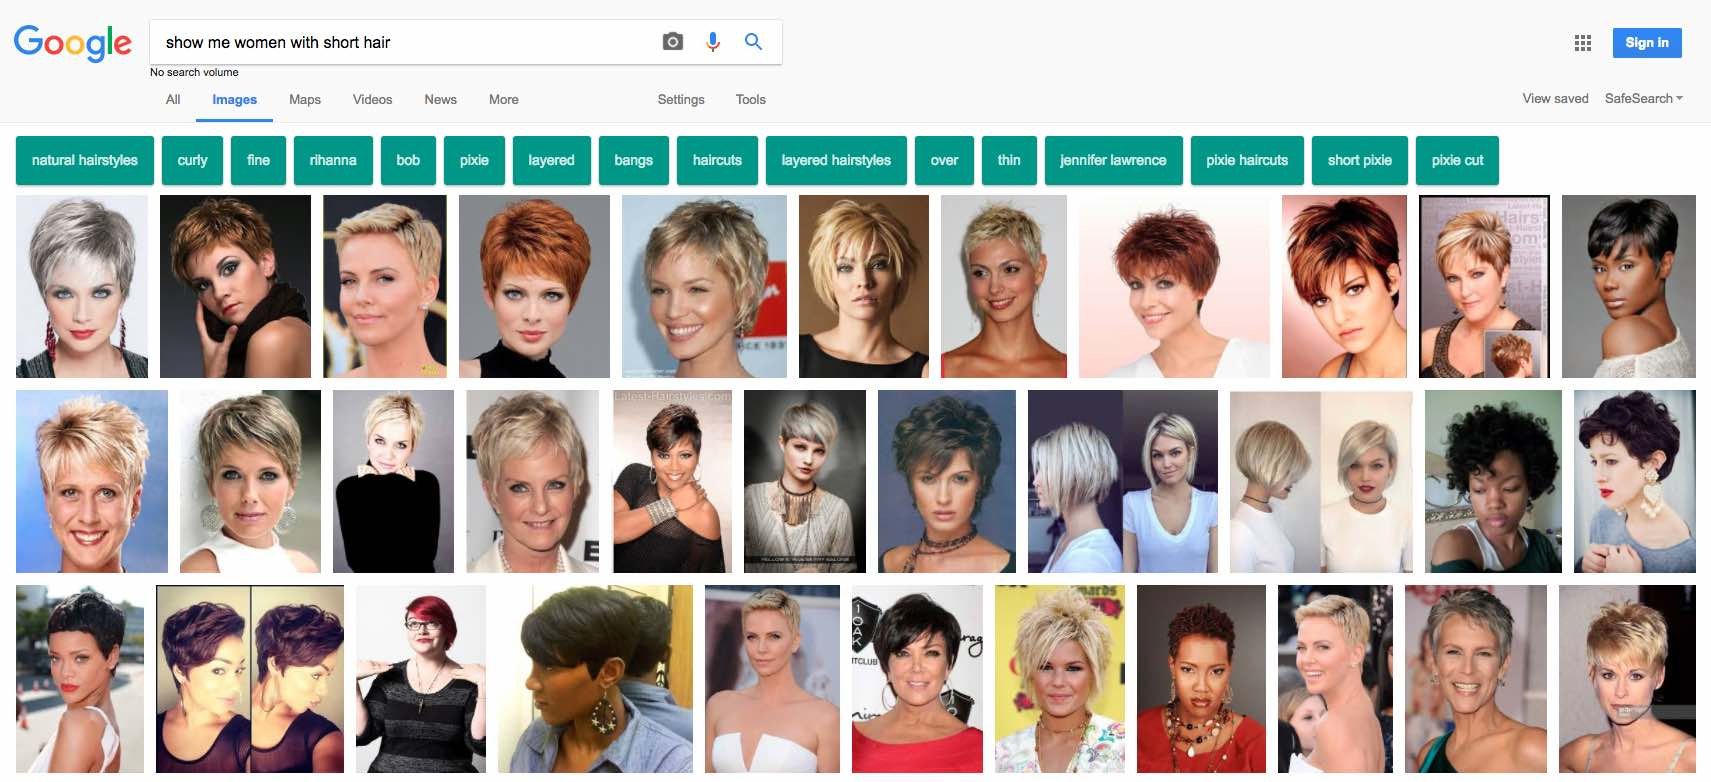 Google images with short hair